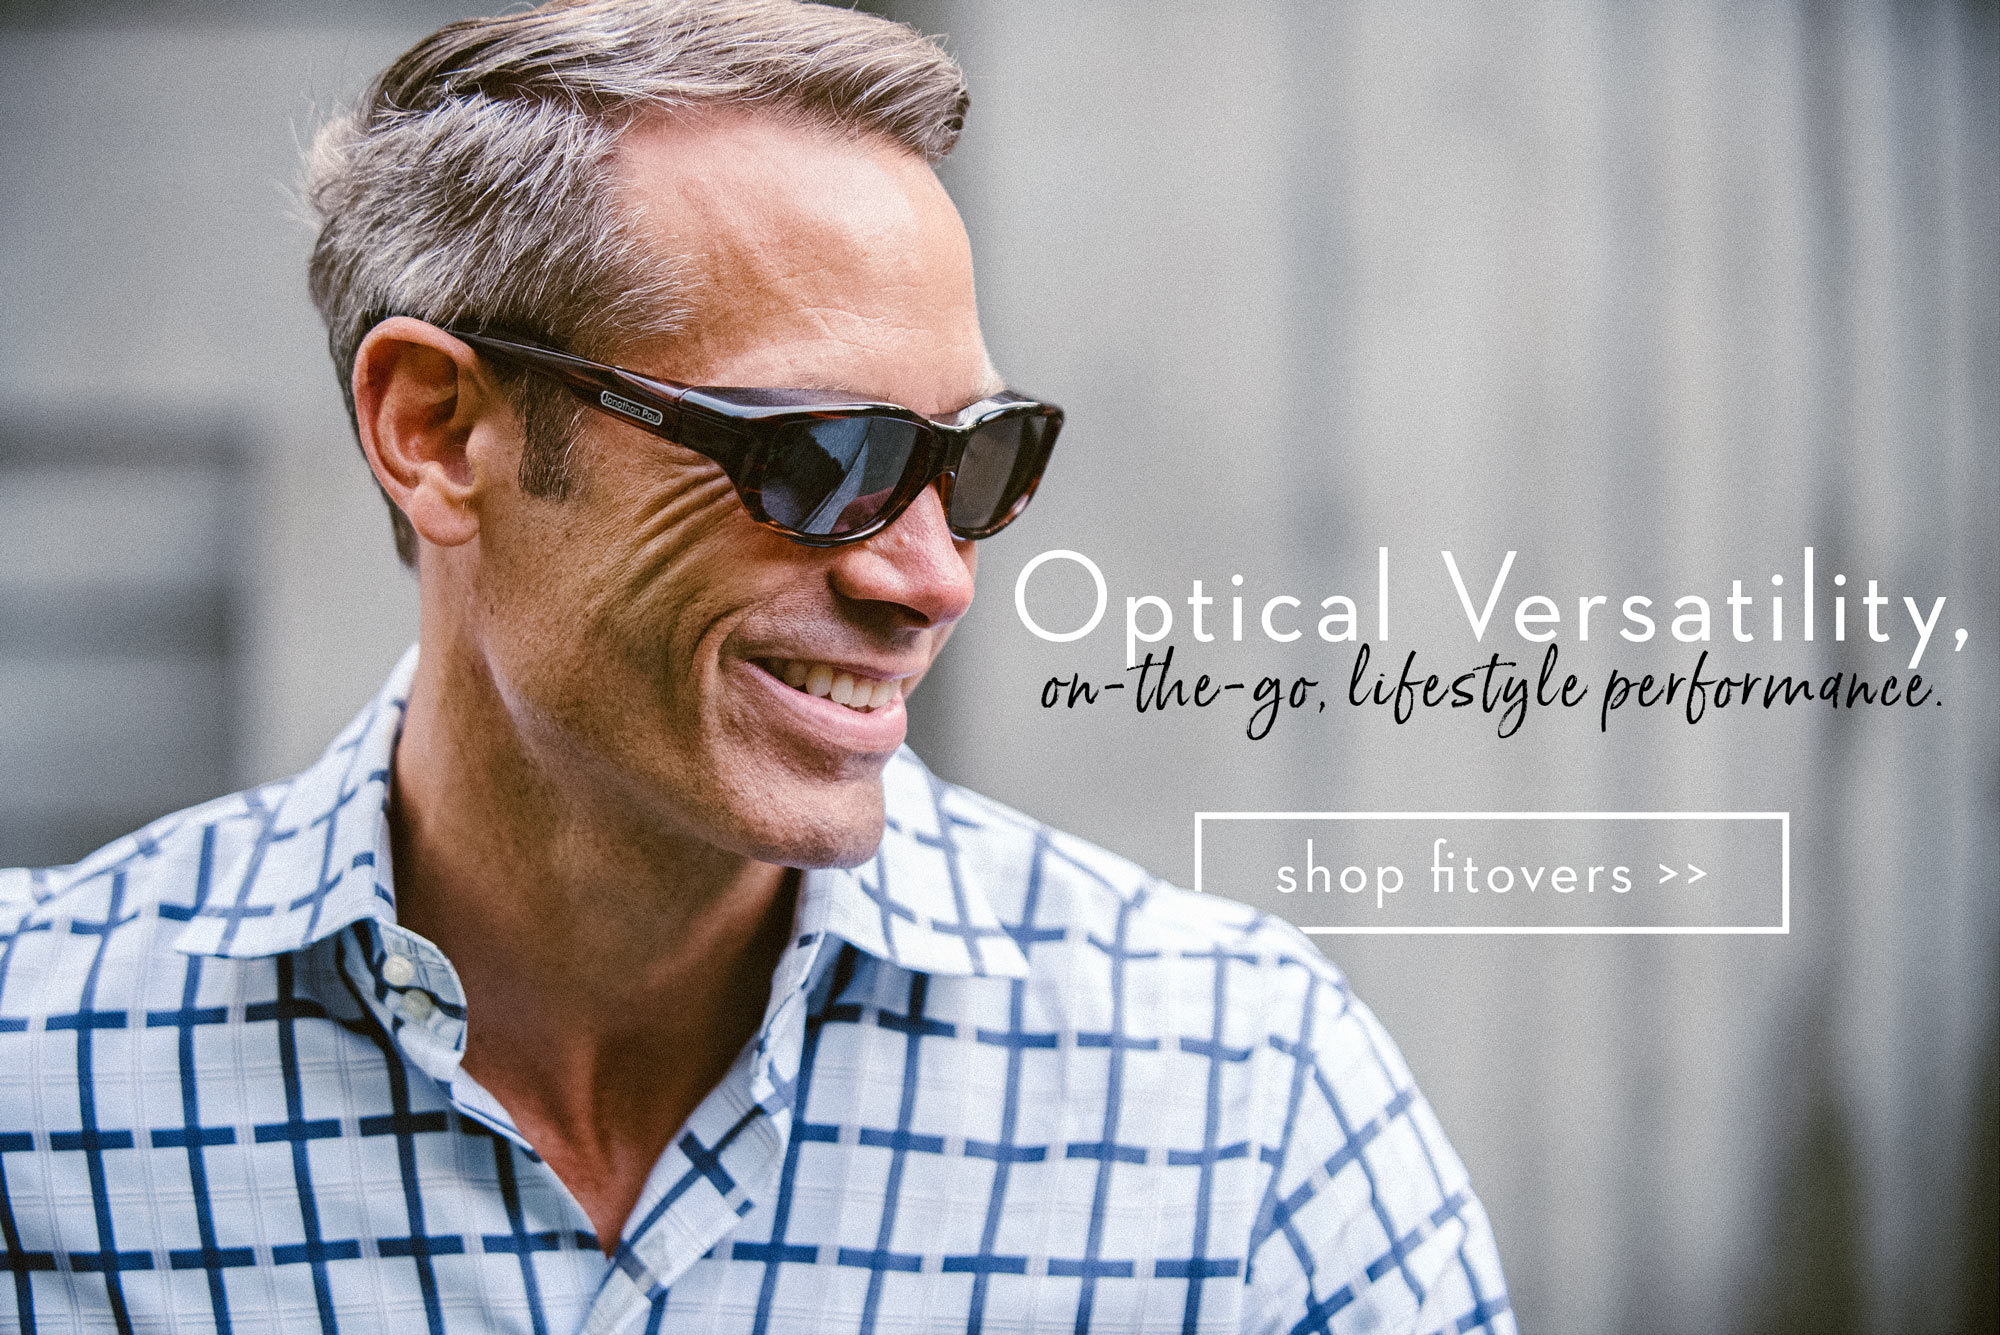 A man wearing sunglasses by Jonathan Paul designed to fit over prescription eyewear